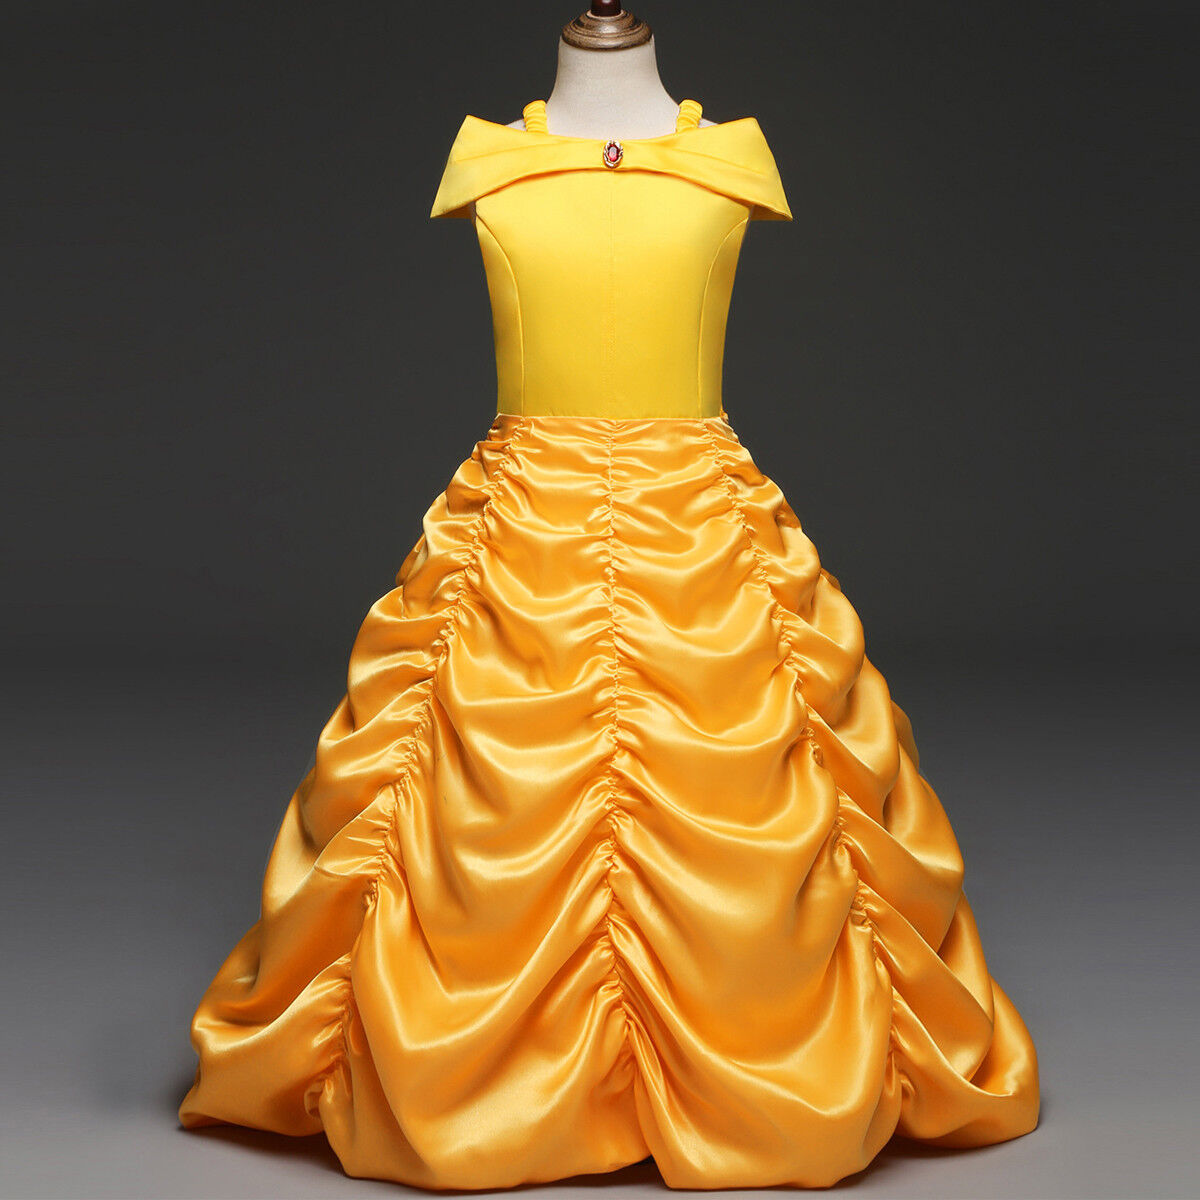 03989dd702b9c Details about Girls Princess Belle Dress up Beauty and The Beast Yellow  Party Cosplay Costume